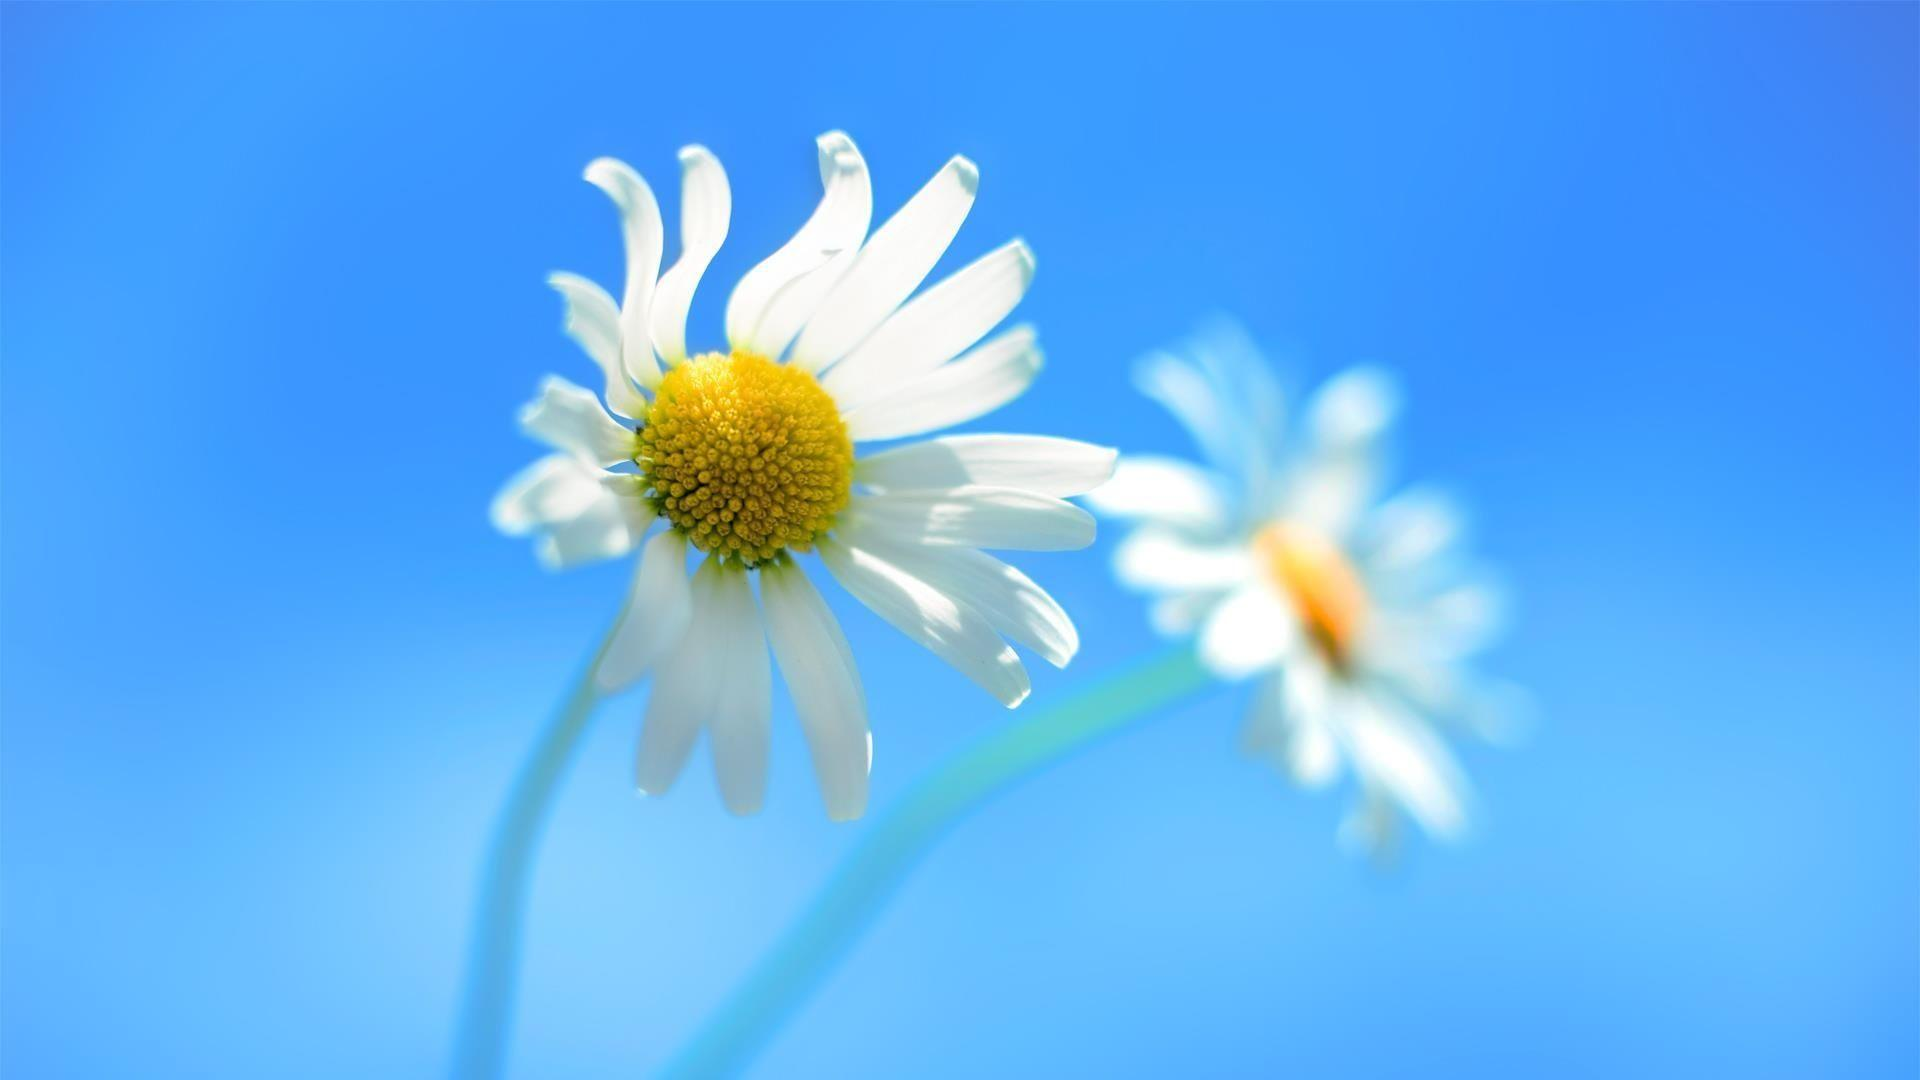 1920x1080 Daisy blue backgrounds Wallpapers